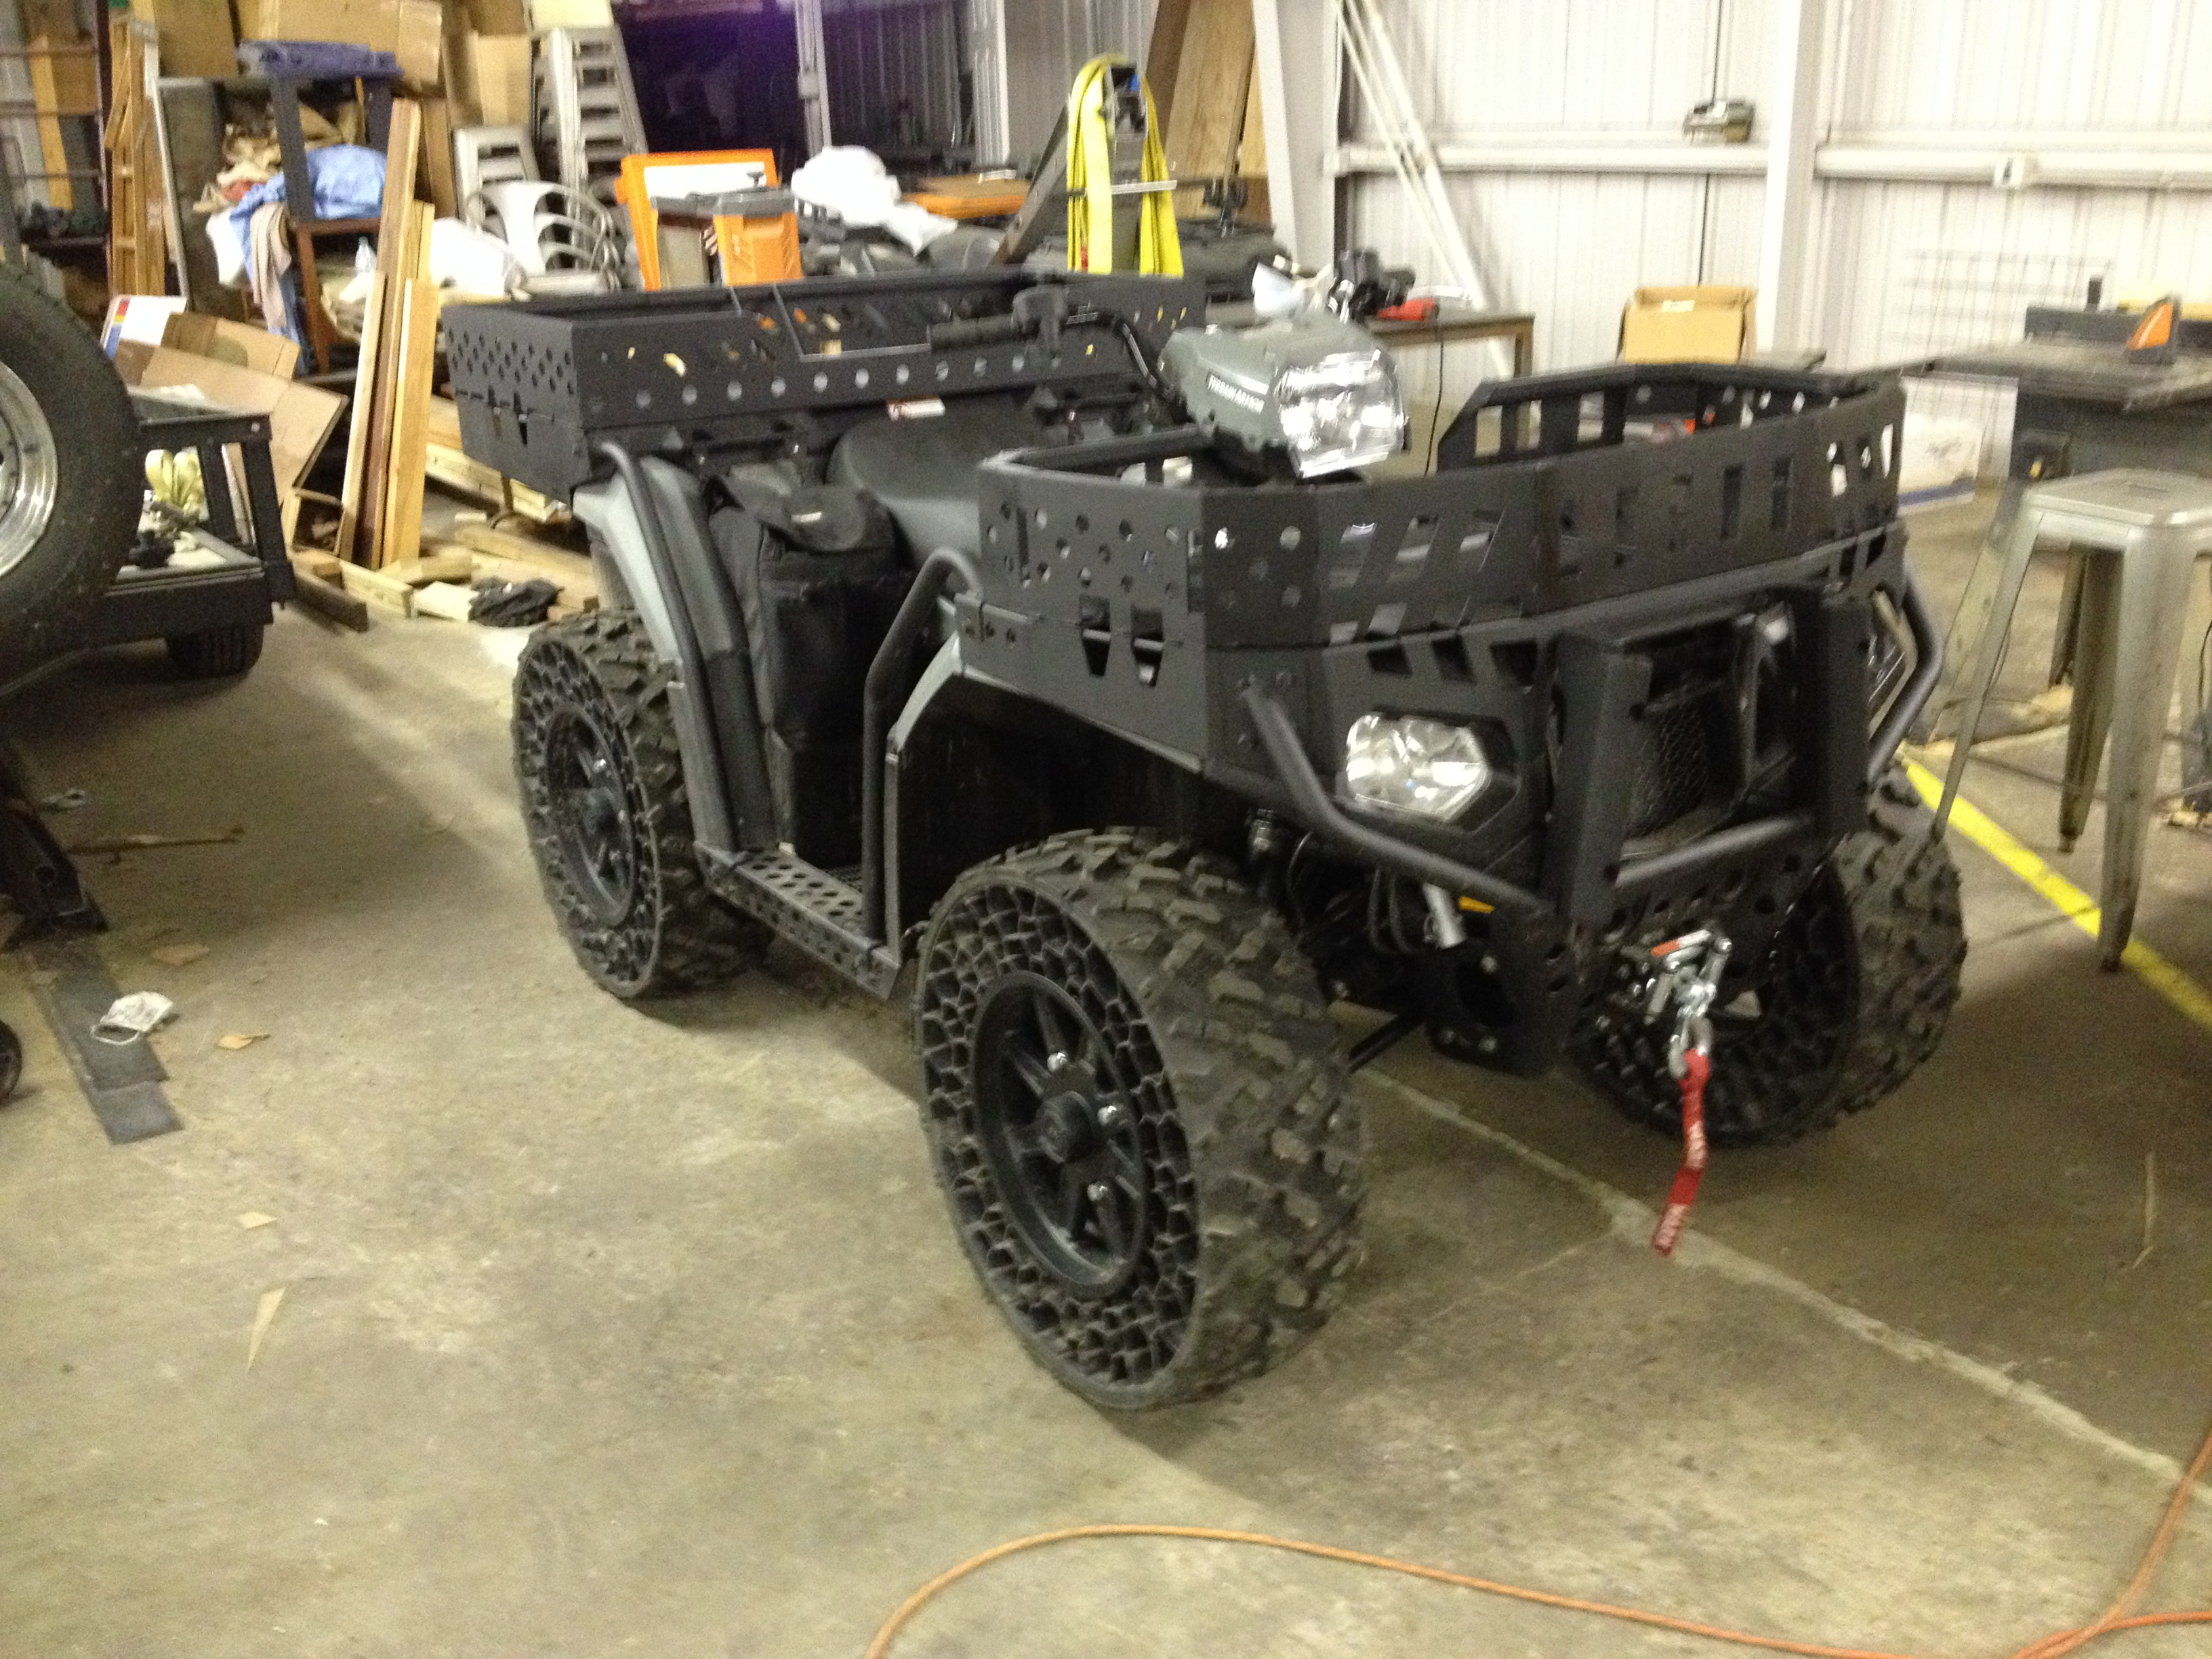 diesel light rolling a be rack very oregon also on bed it enough cummins img nice the sit doesn fs person other forum by rails loaded which of dodge is atv with makes assist horrible idea to t quad